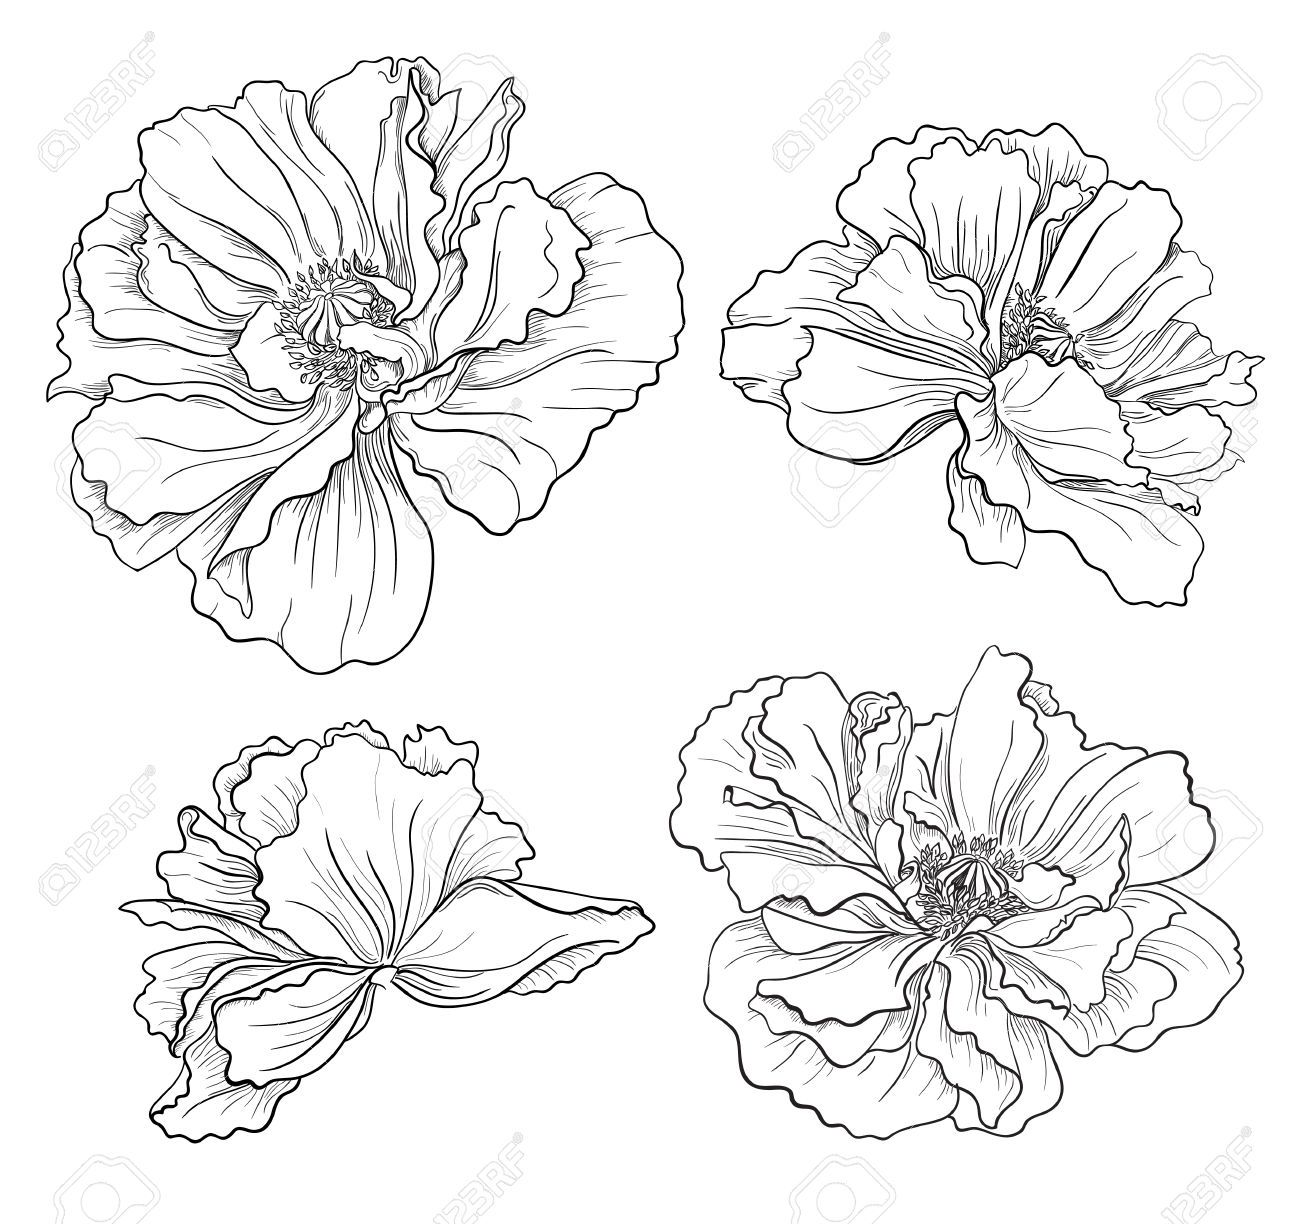 Flower Hand Drawn Poppies Royalty Free Cliparts, Vectors, And Stock ...